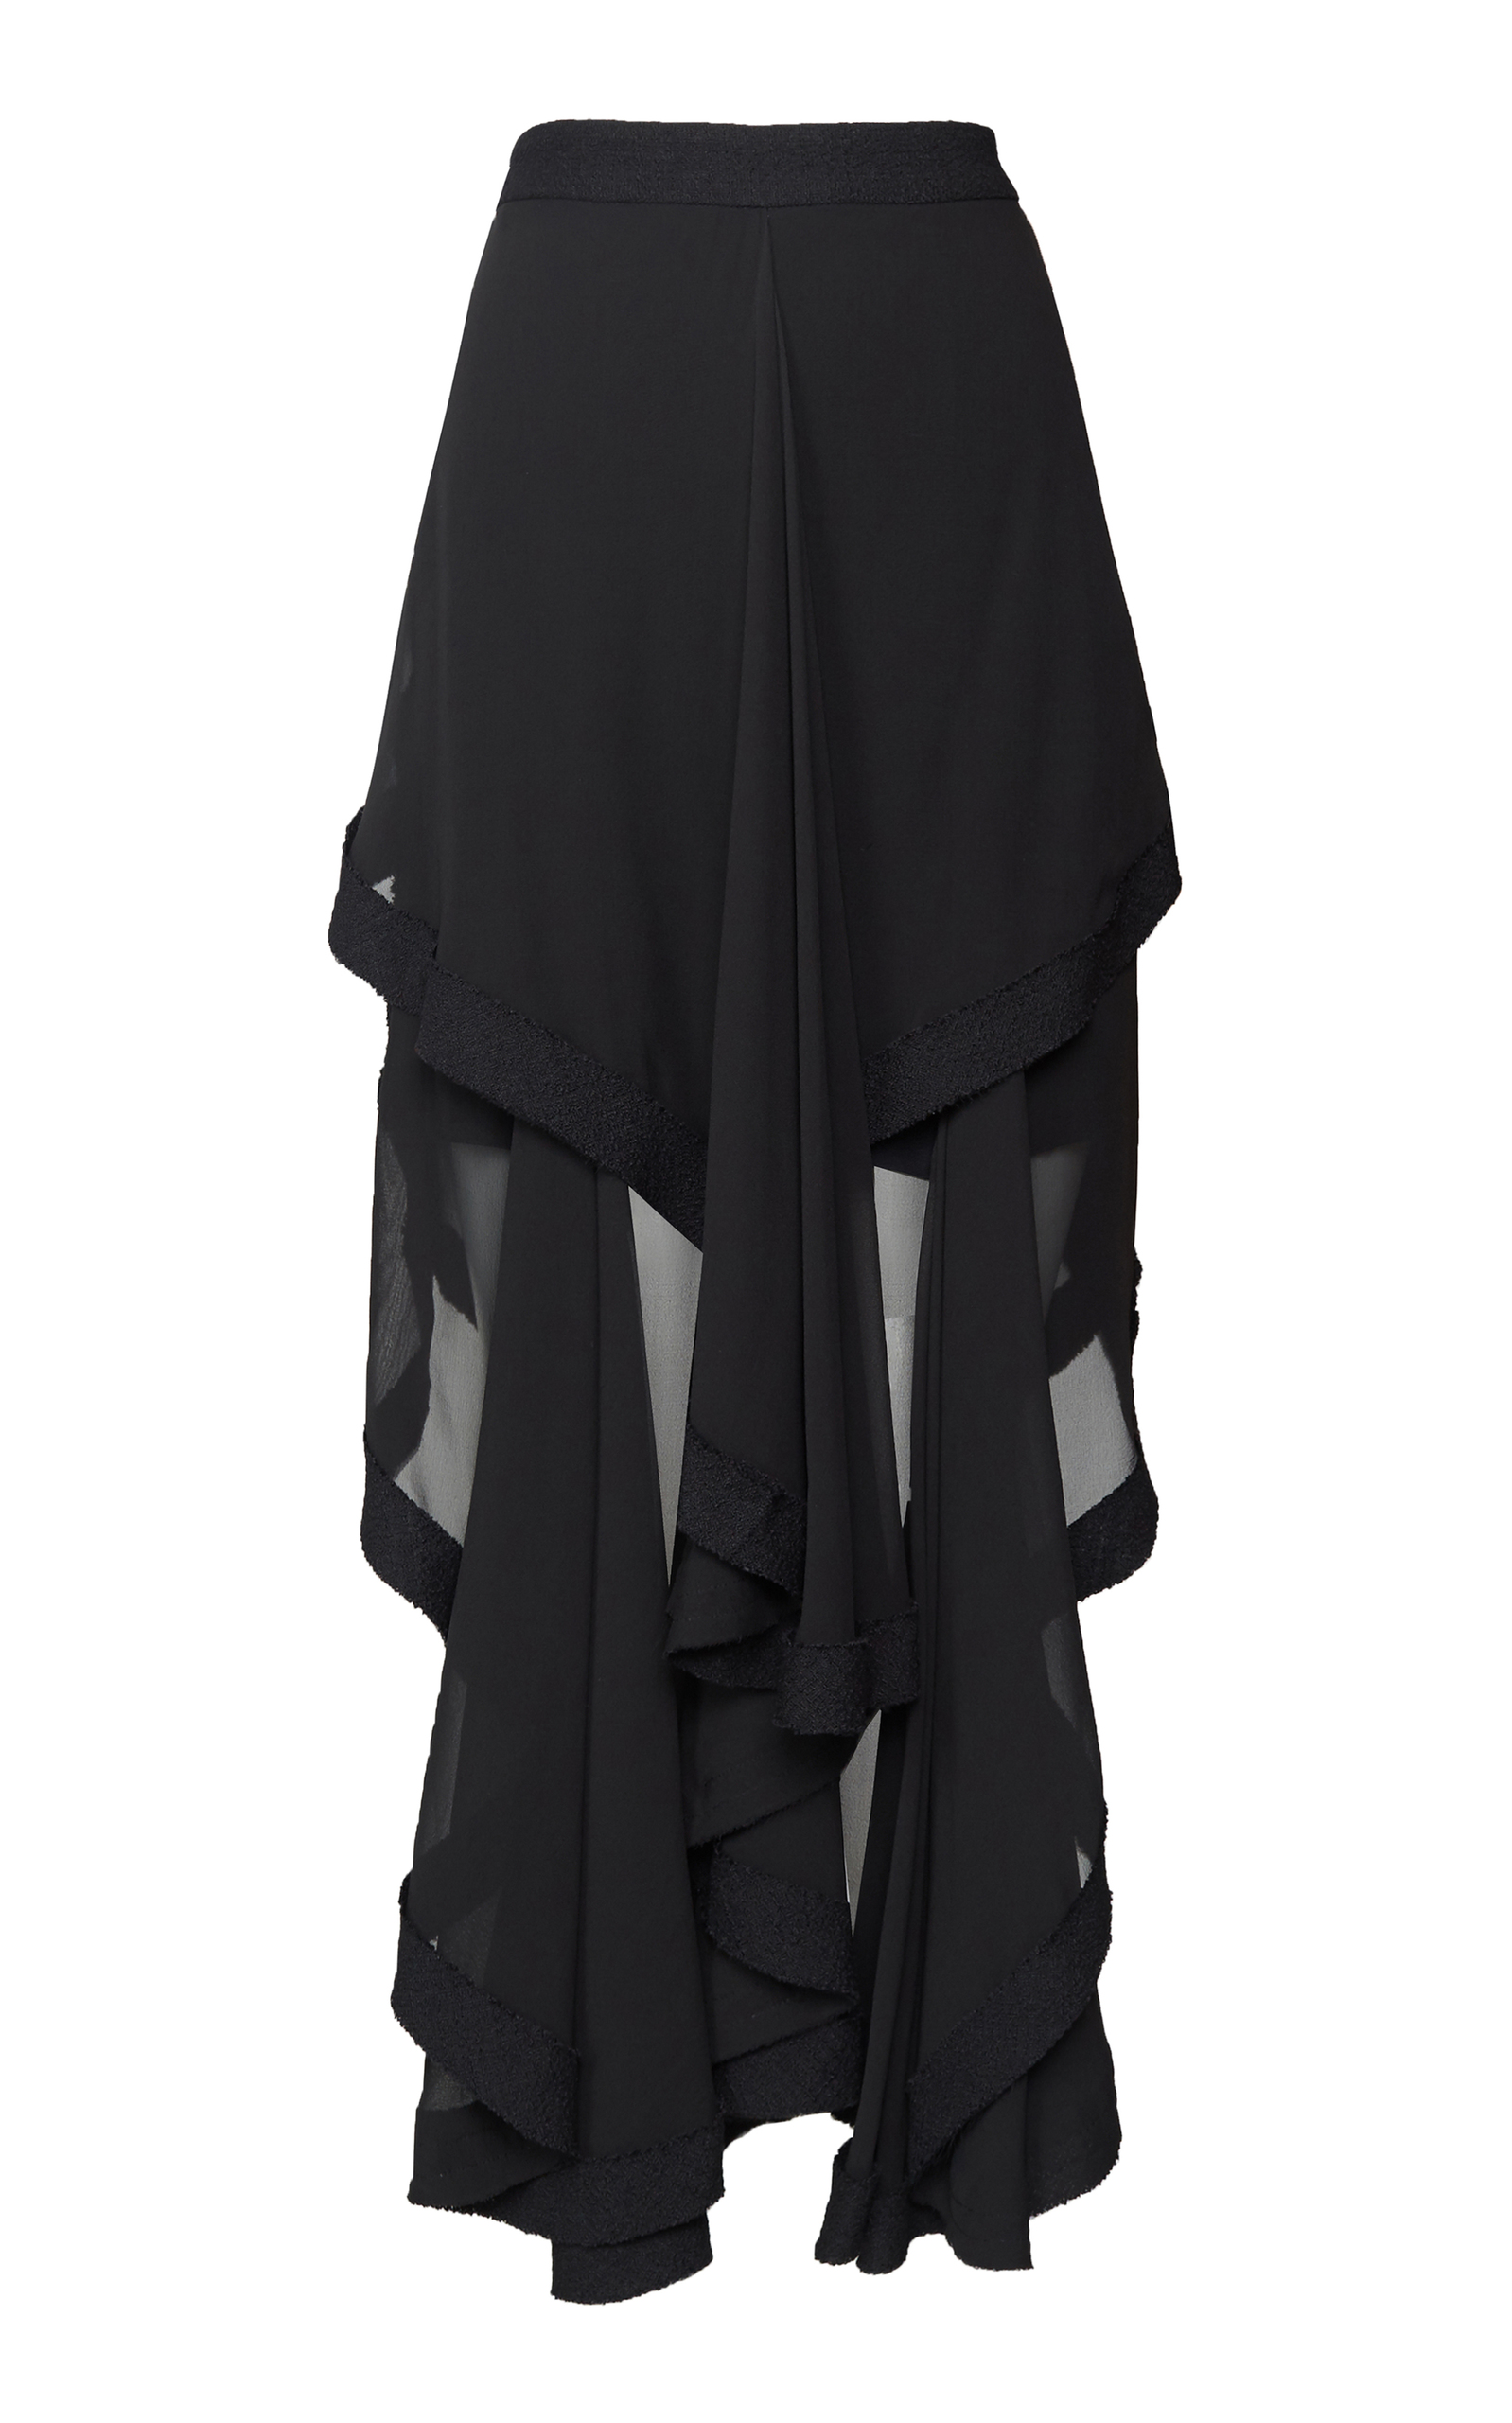 footage tibi filament drapes skirt black jersey products draped